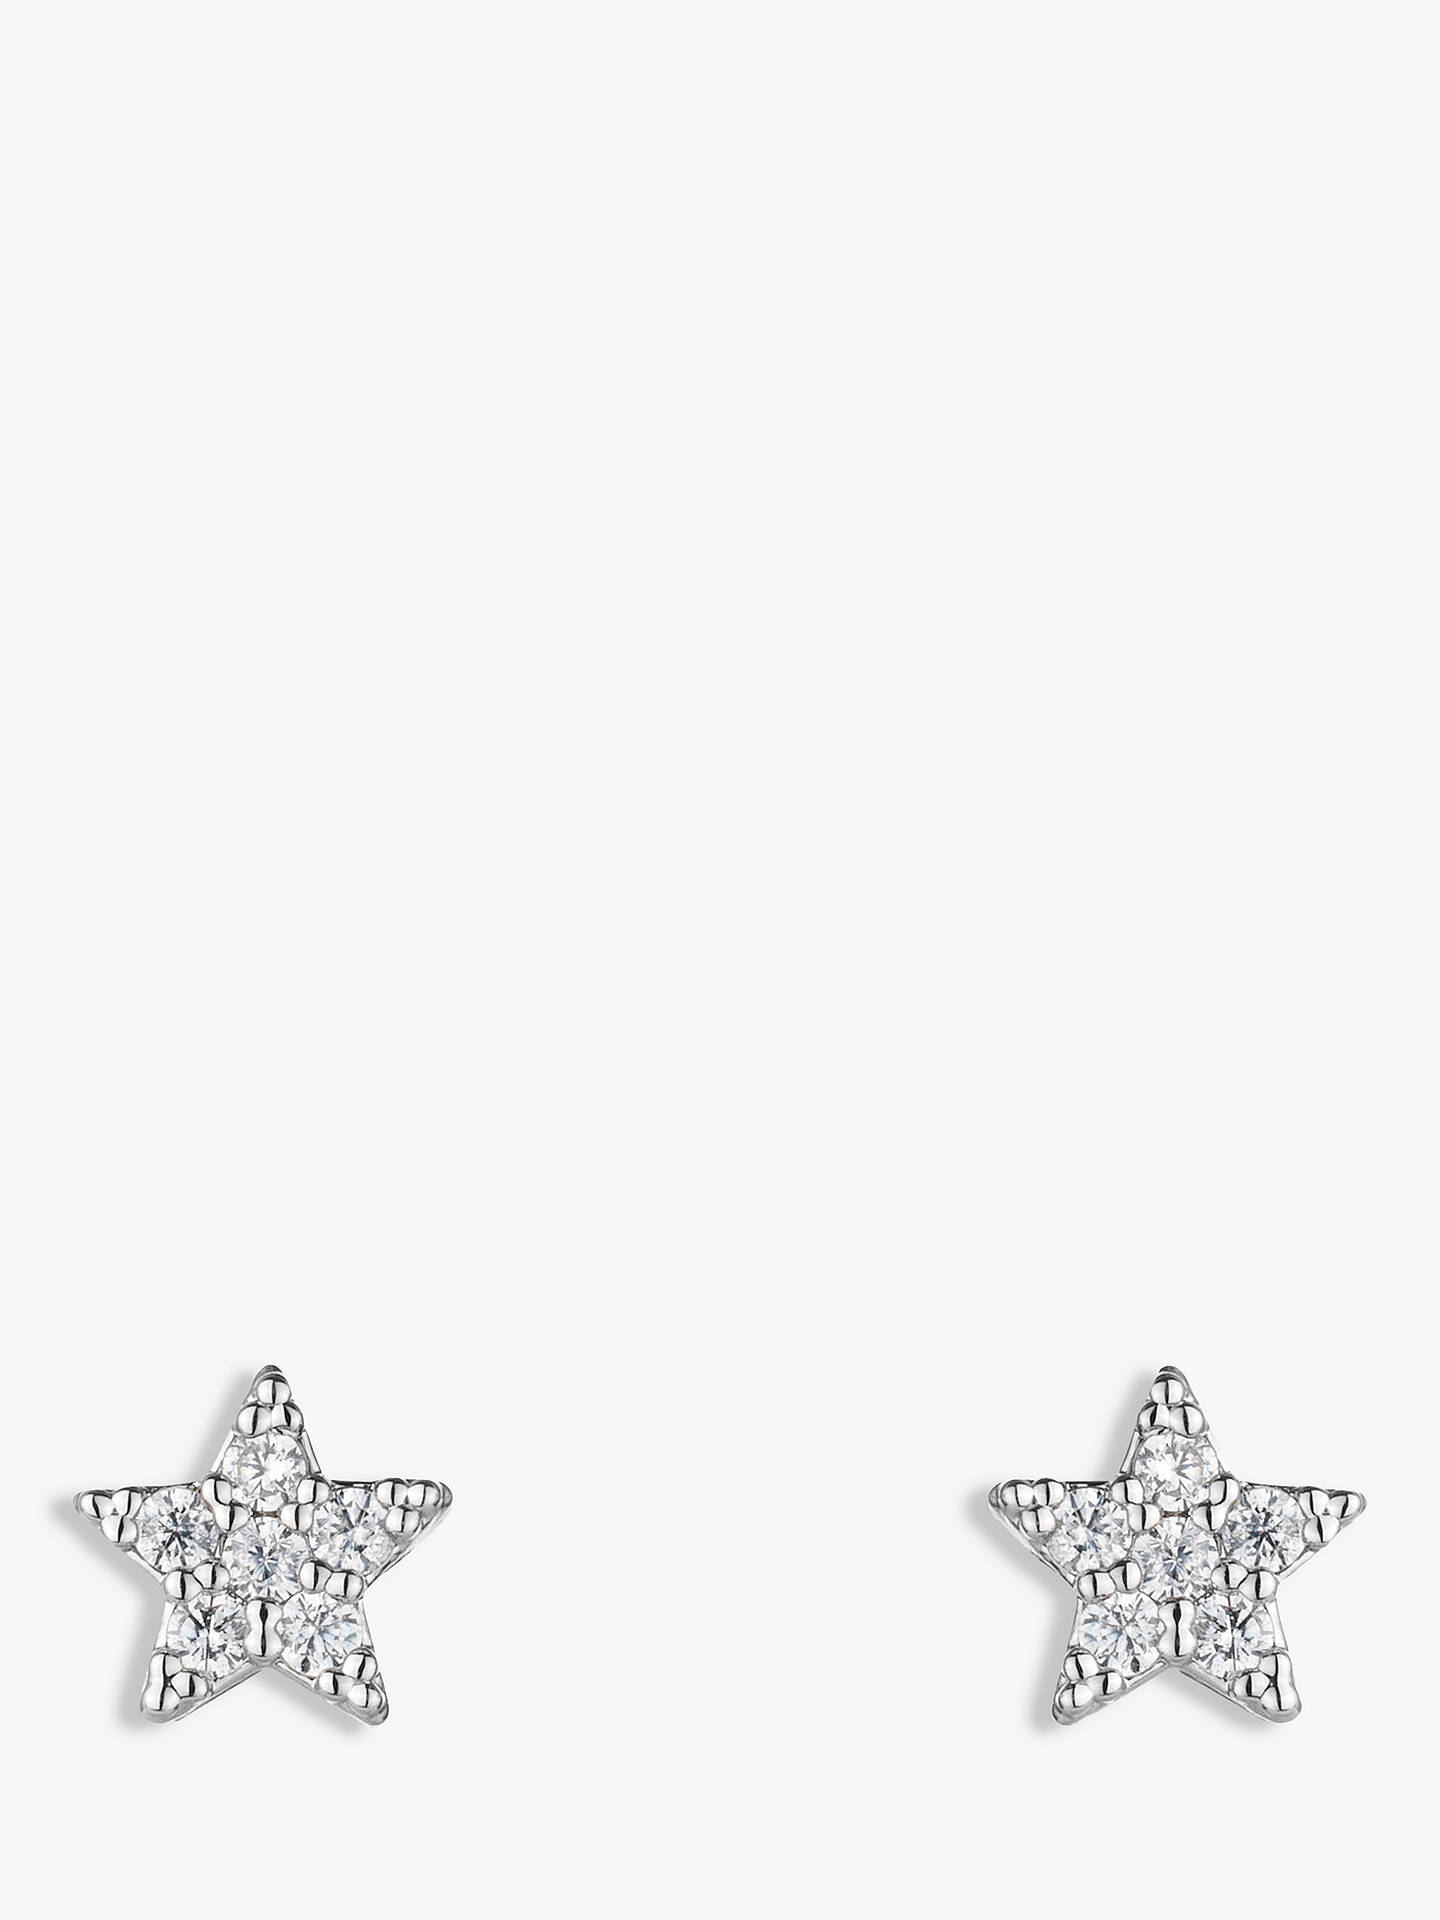 BuyEstella Bartlett Star Stud Earrings, Silver Online at johnlewis.com